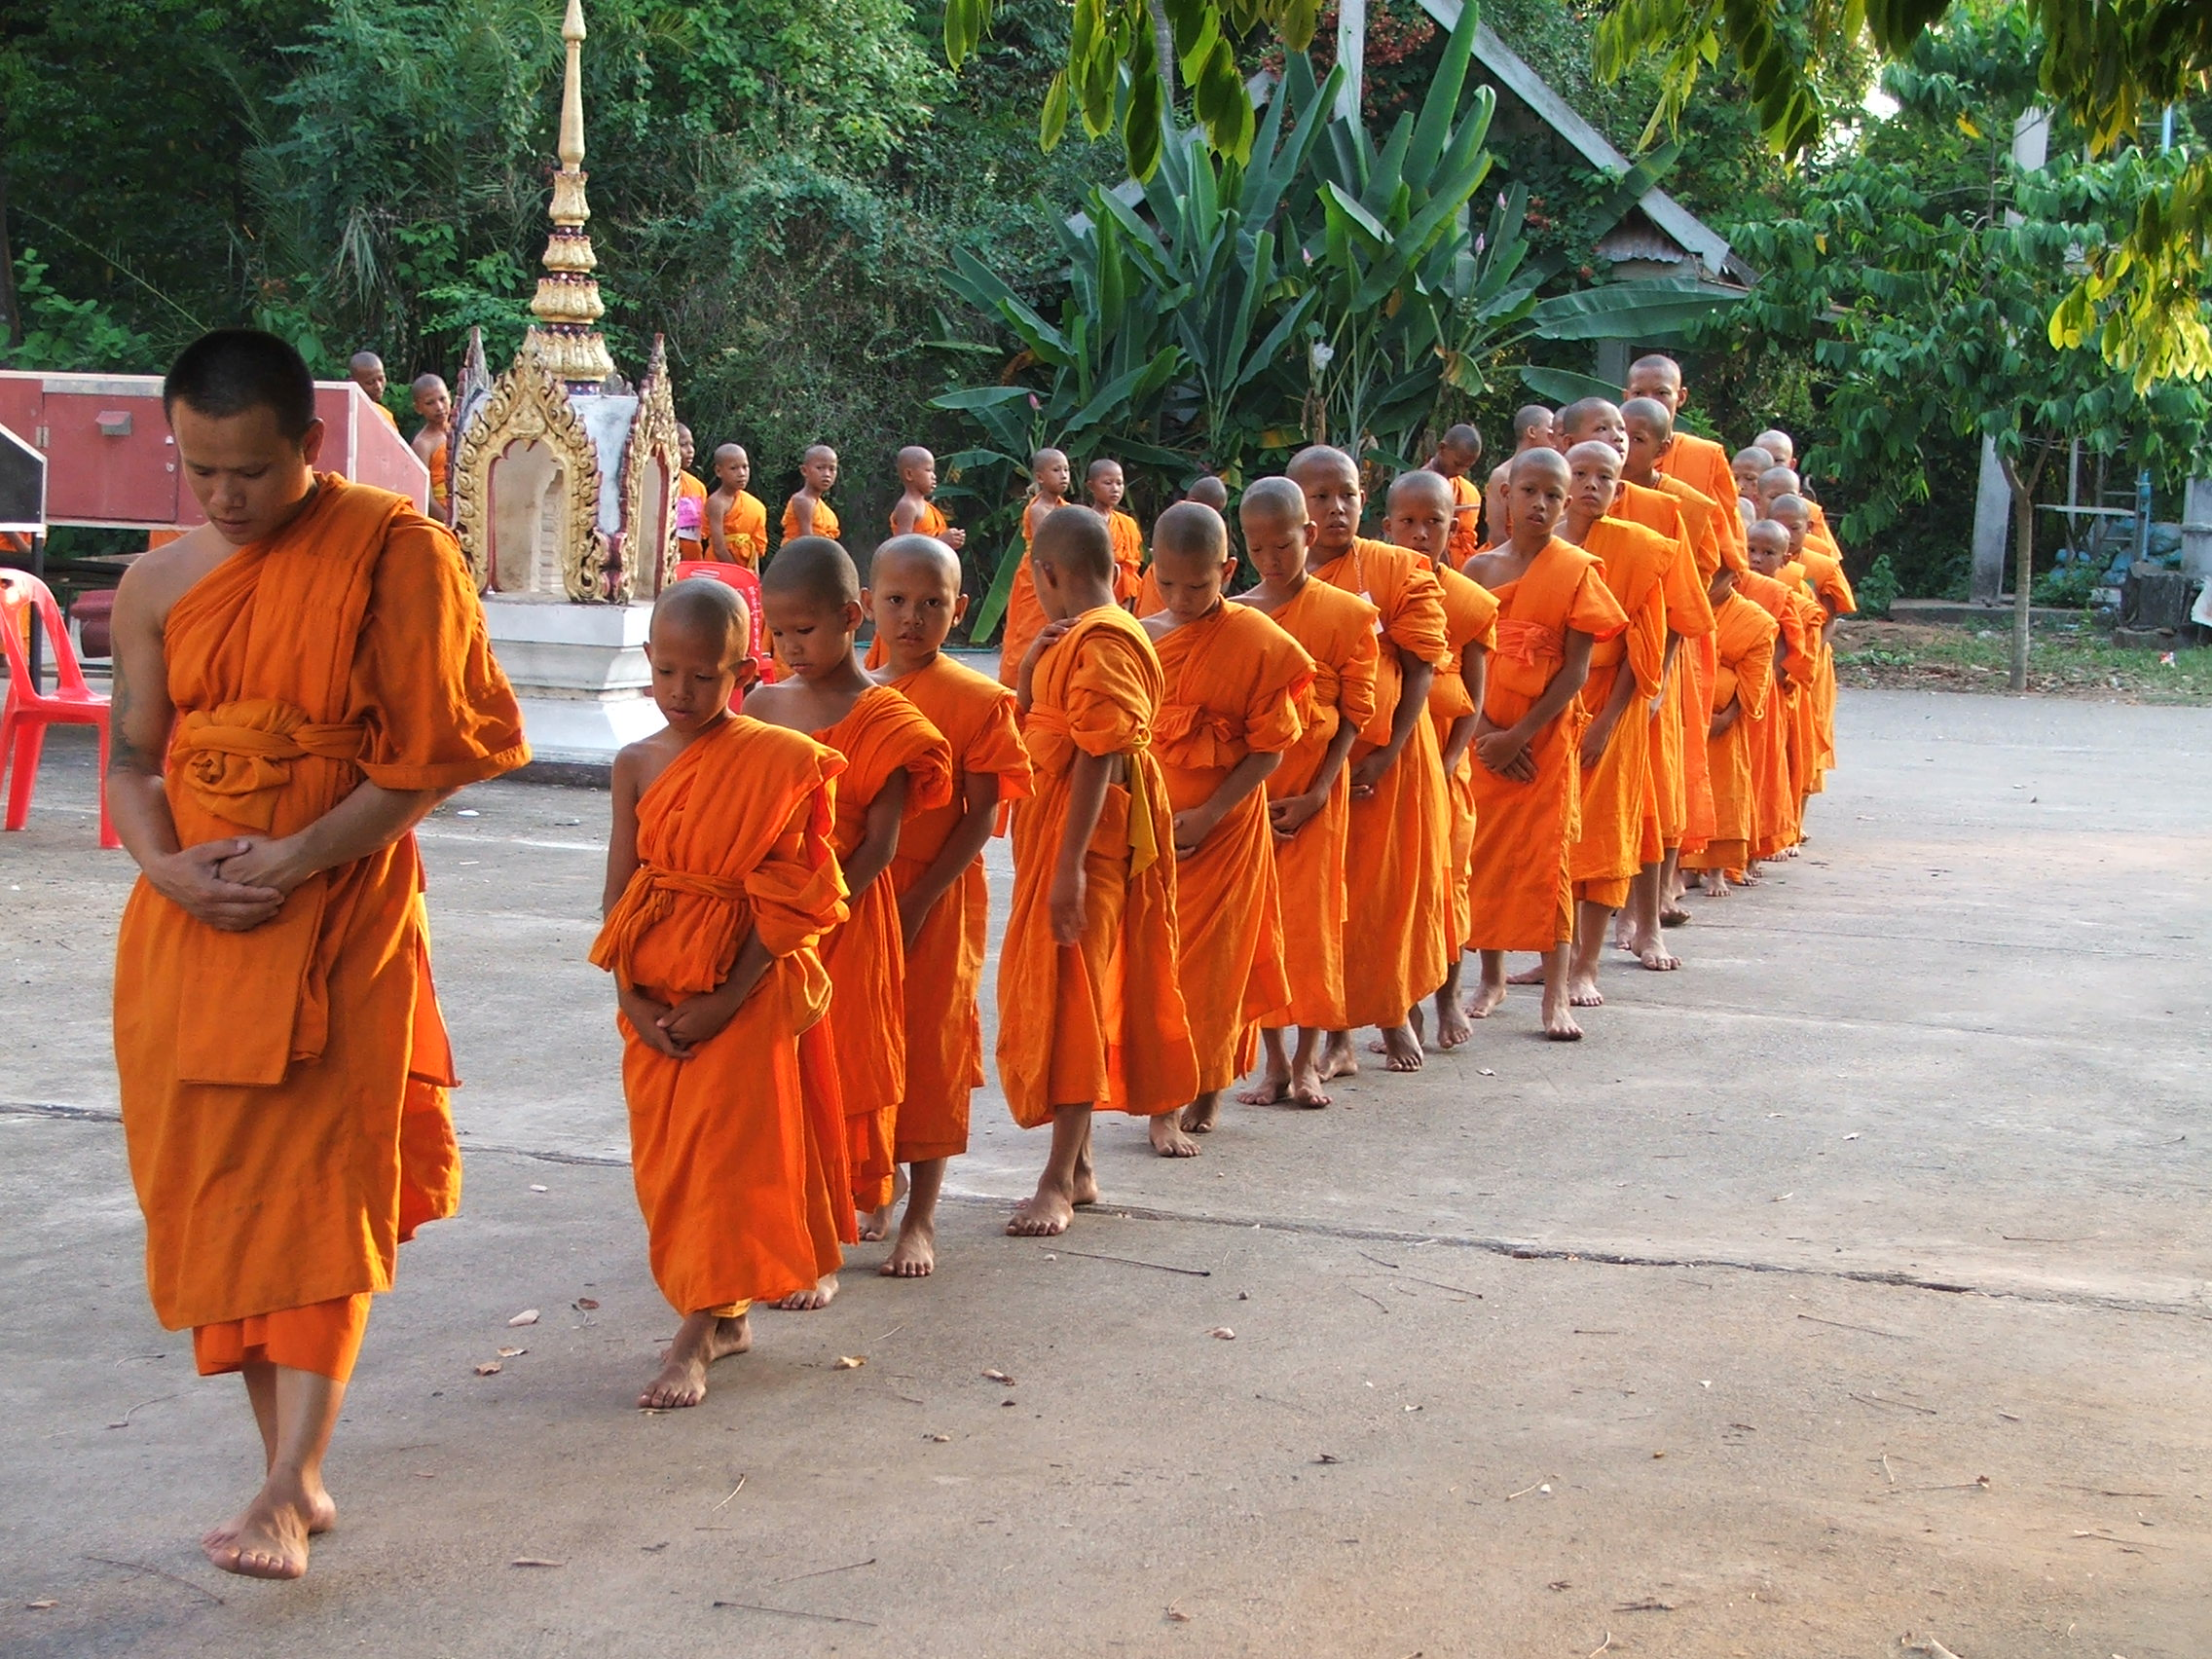 file novice in the buddhist religion faculty is walking back and